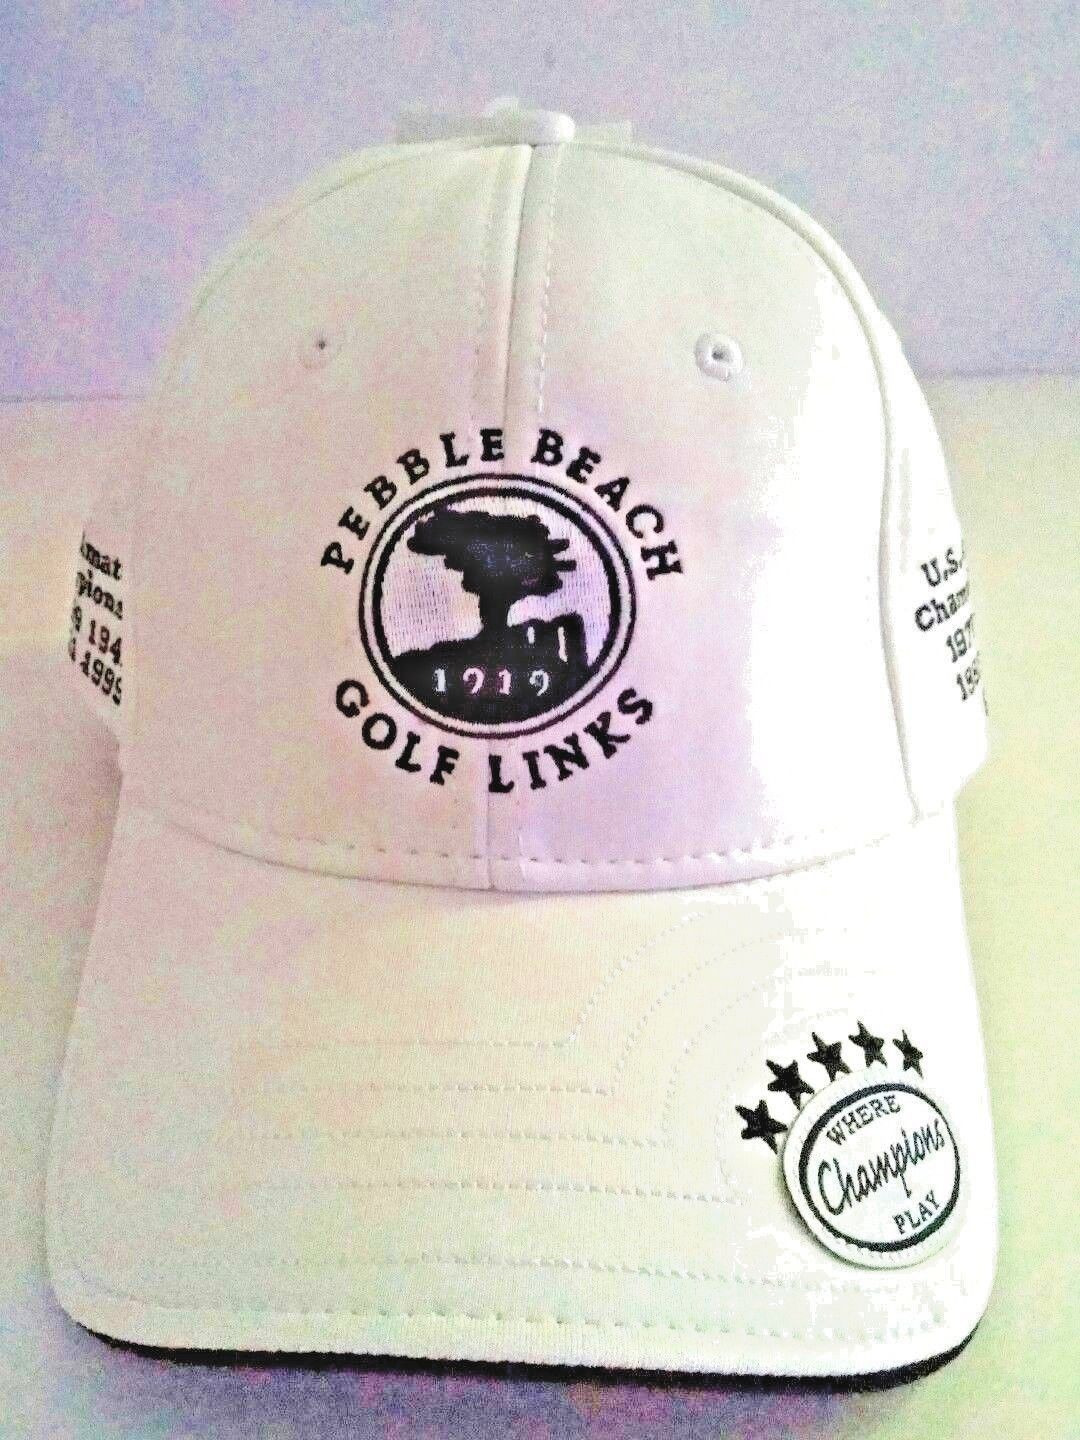 Pebble Beach Golf Links 1919 Hat Cap New Champions Collection White Ebay Link